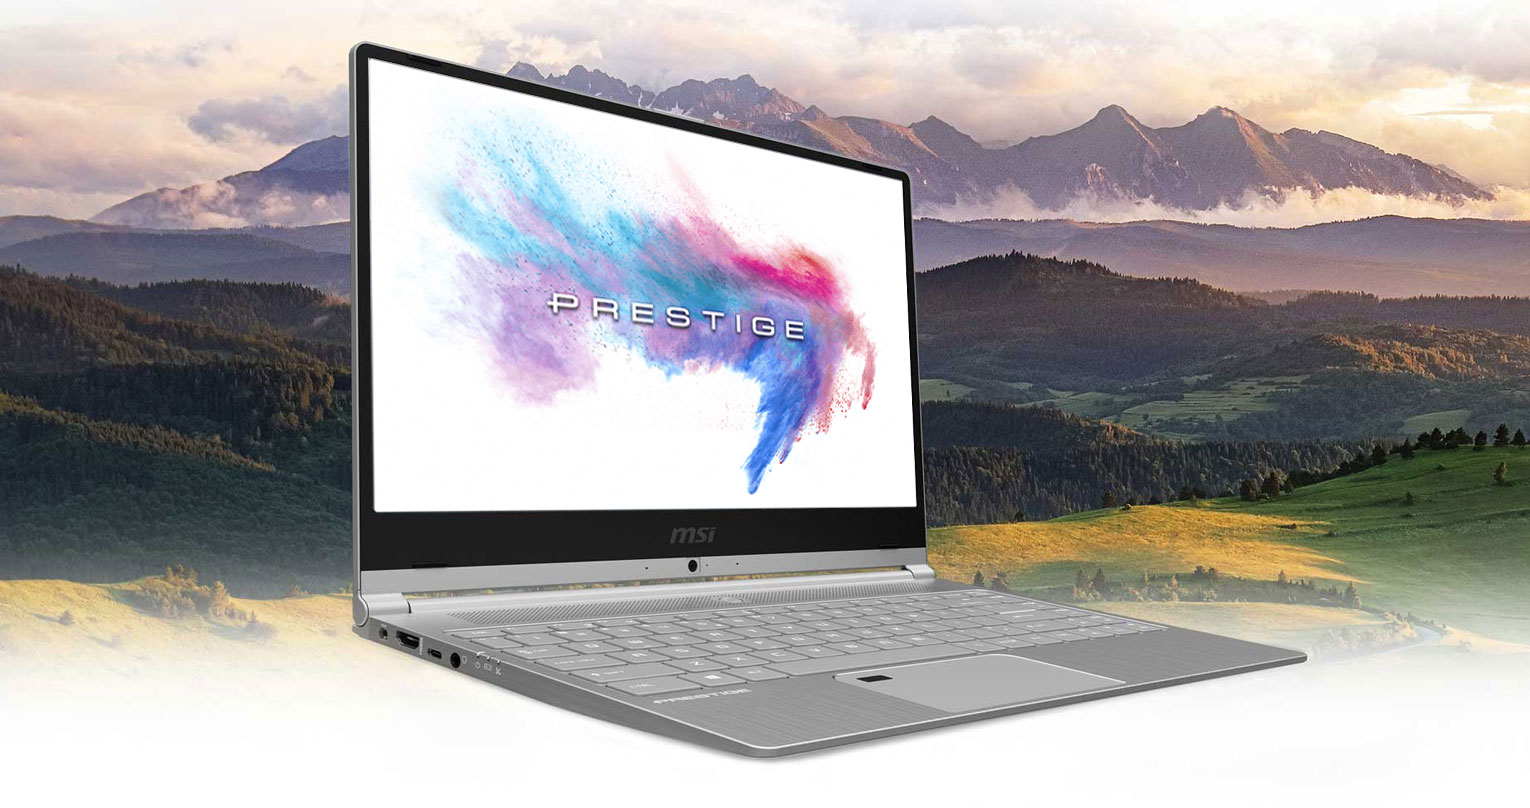 PS42, il laptop elegante per professionisti